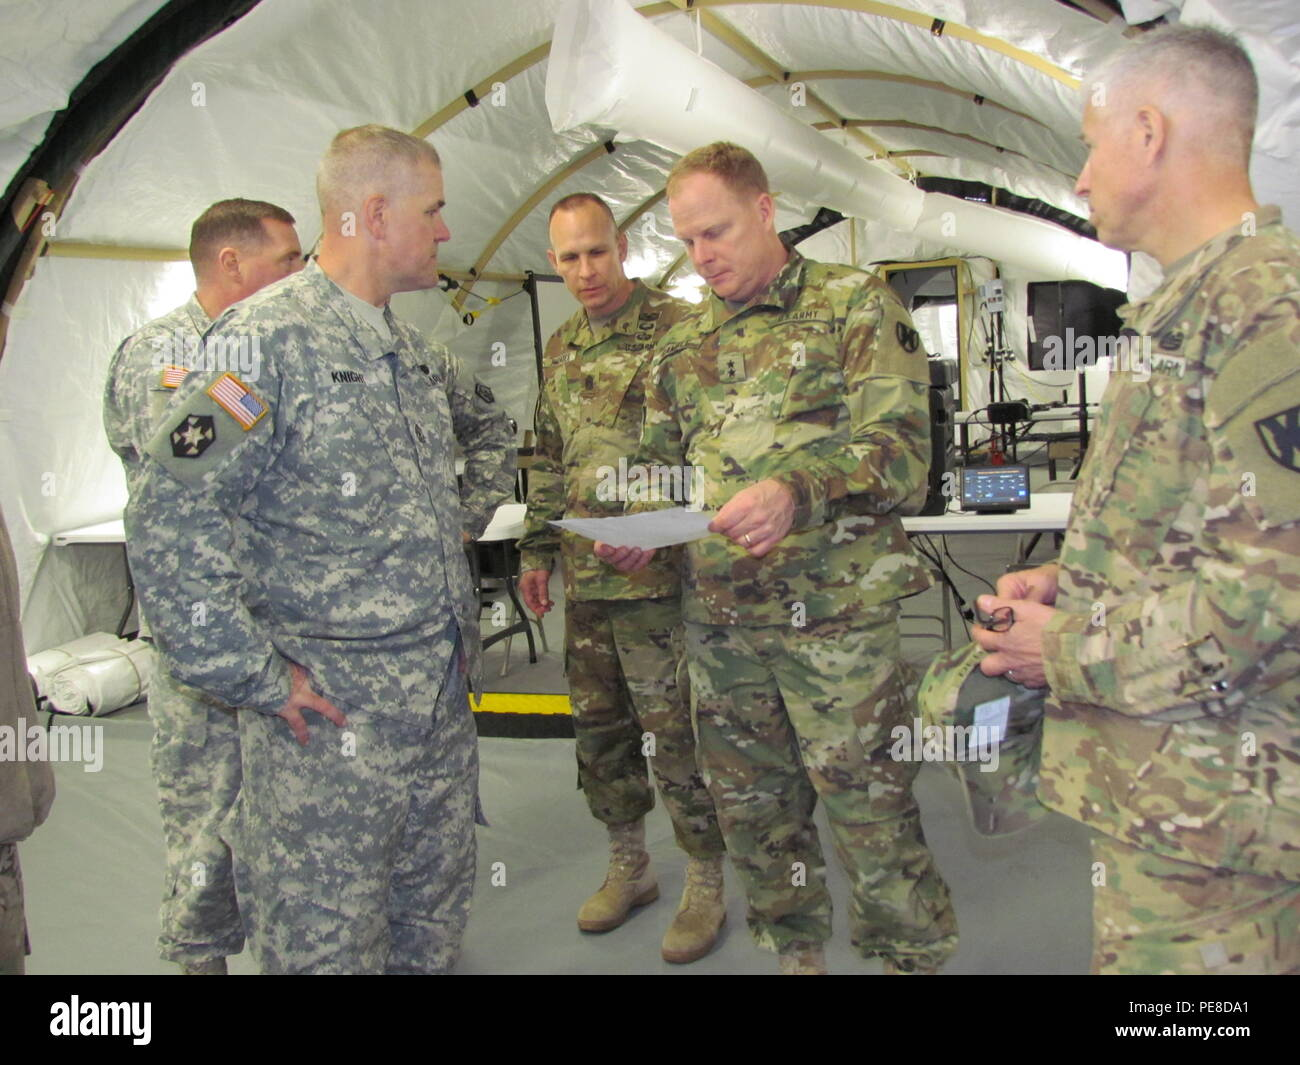 Maj. Gen. Duane Gamble, commanding general of the 21st Theater Support Command, examines schematics of the 7th Mission Support Command's tactical command post Monday, Oct. 26, 2015, at Panzer Kaserne in Kaiserslautern, Germany. The 6,000 square foot star-shaped tactical command post is a modular, portable and expandable system that can quickly be built to provide a brigade-sized operations center and shelter for up to 200 people. (Photo by Lt. Col. Jefferson Wolfe, 7th Mission Support Command Public Affairs Officer) - Stock Image